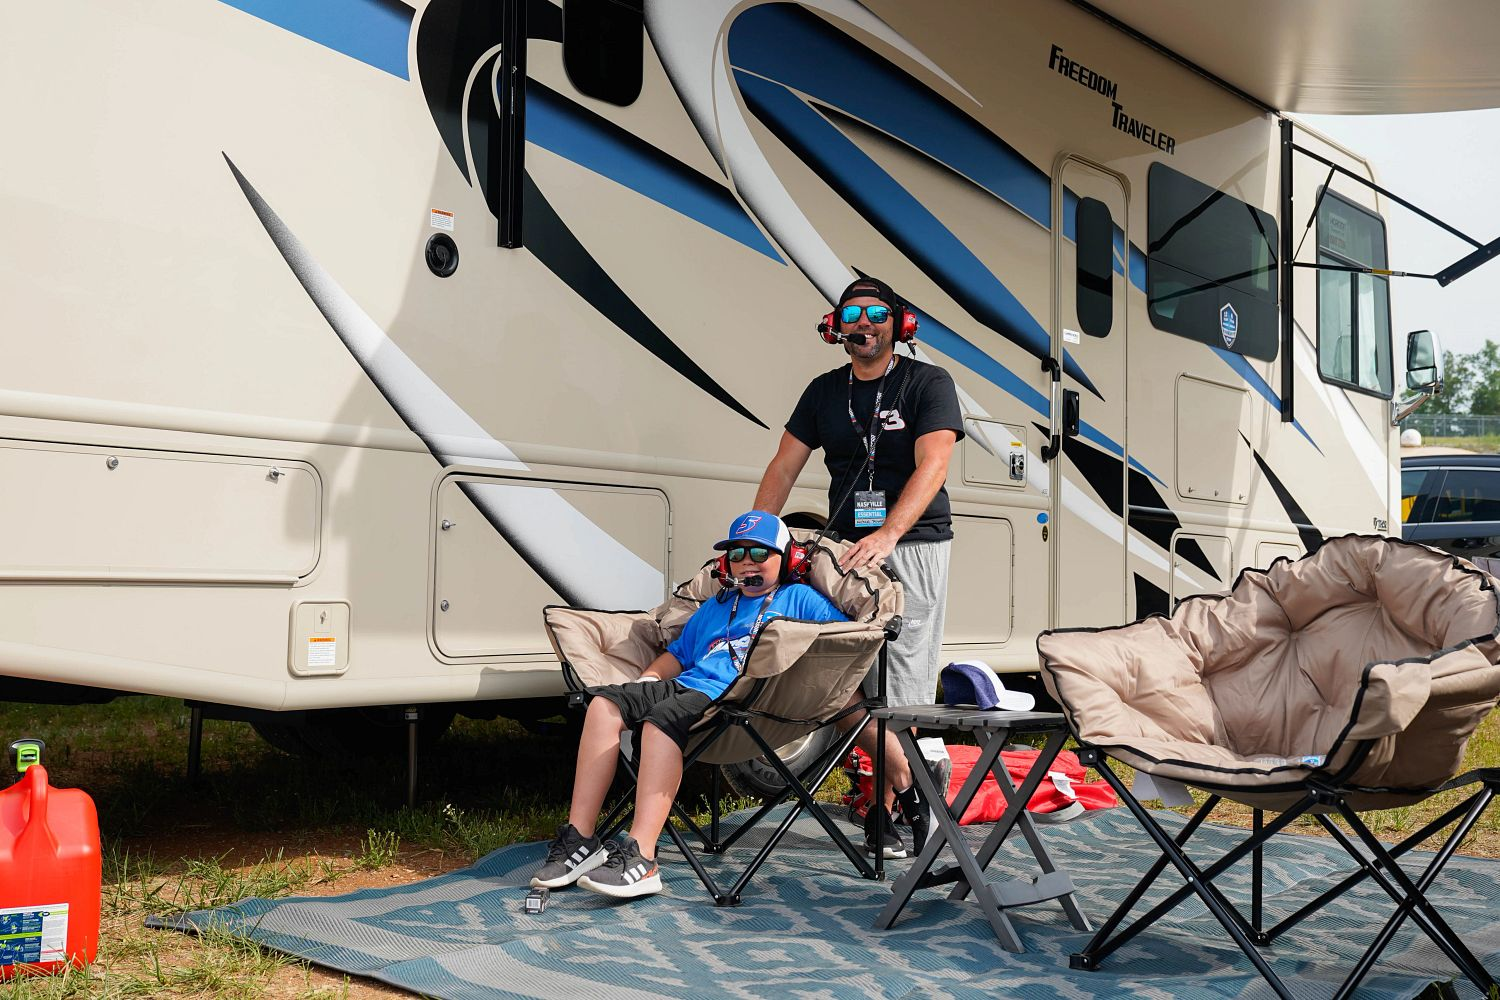 Michael and Mikey Palmer at the campsite